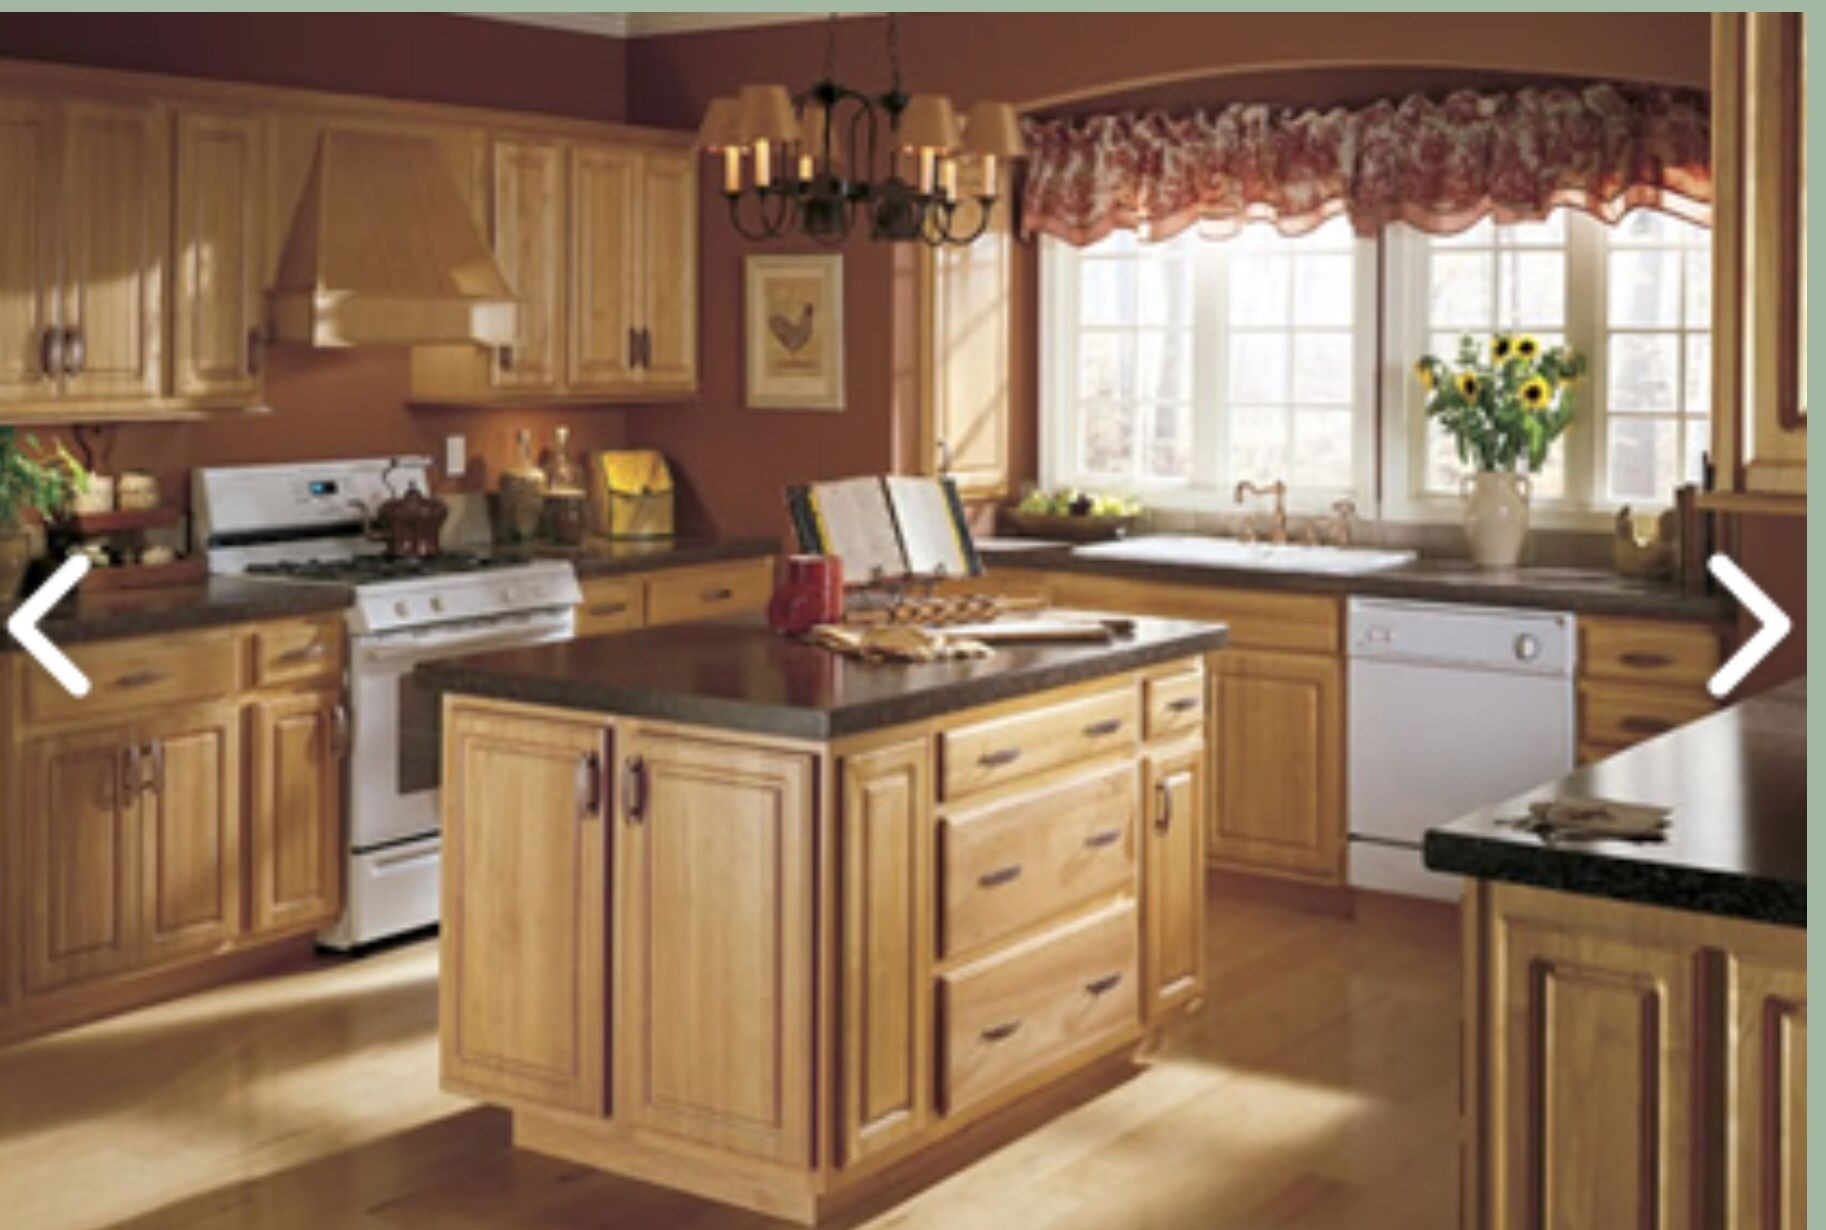 Black Appliances With Oak Cabinets